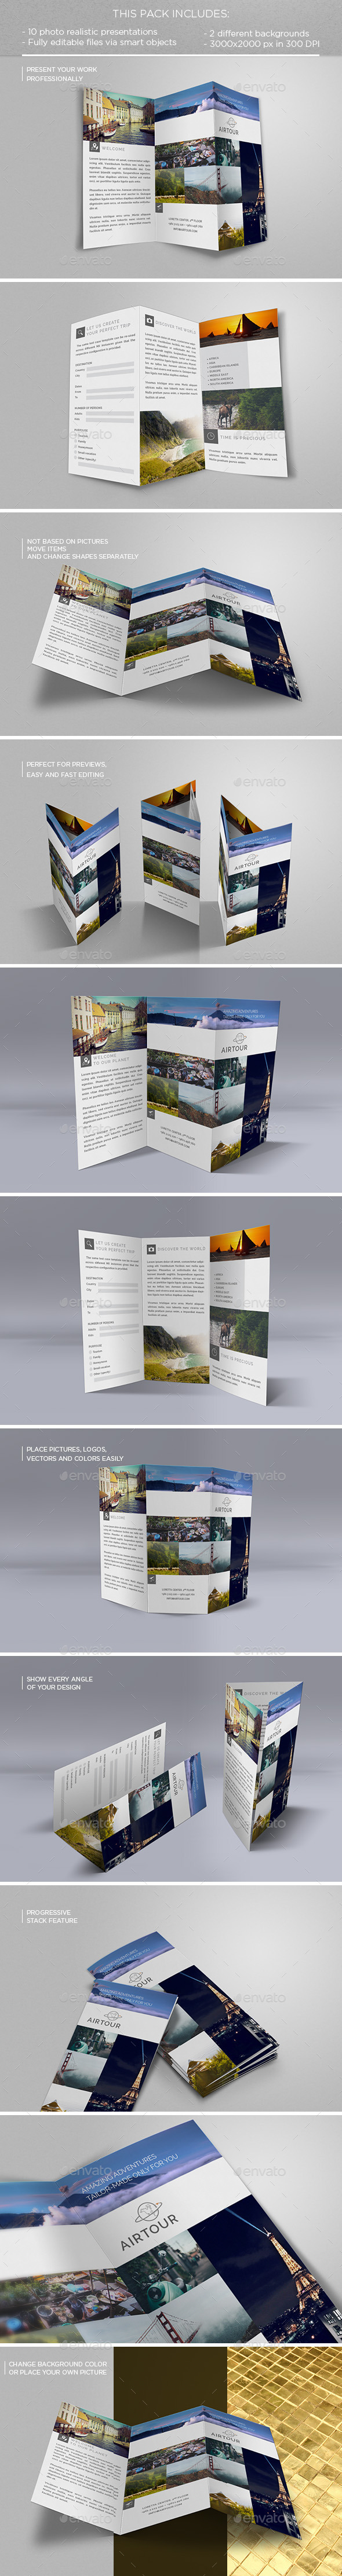 GraphicRiver Tri-fold Flyer Mockup 11826532